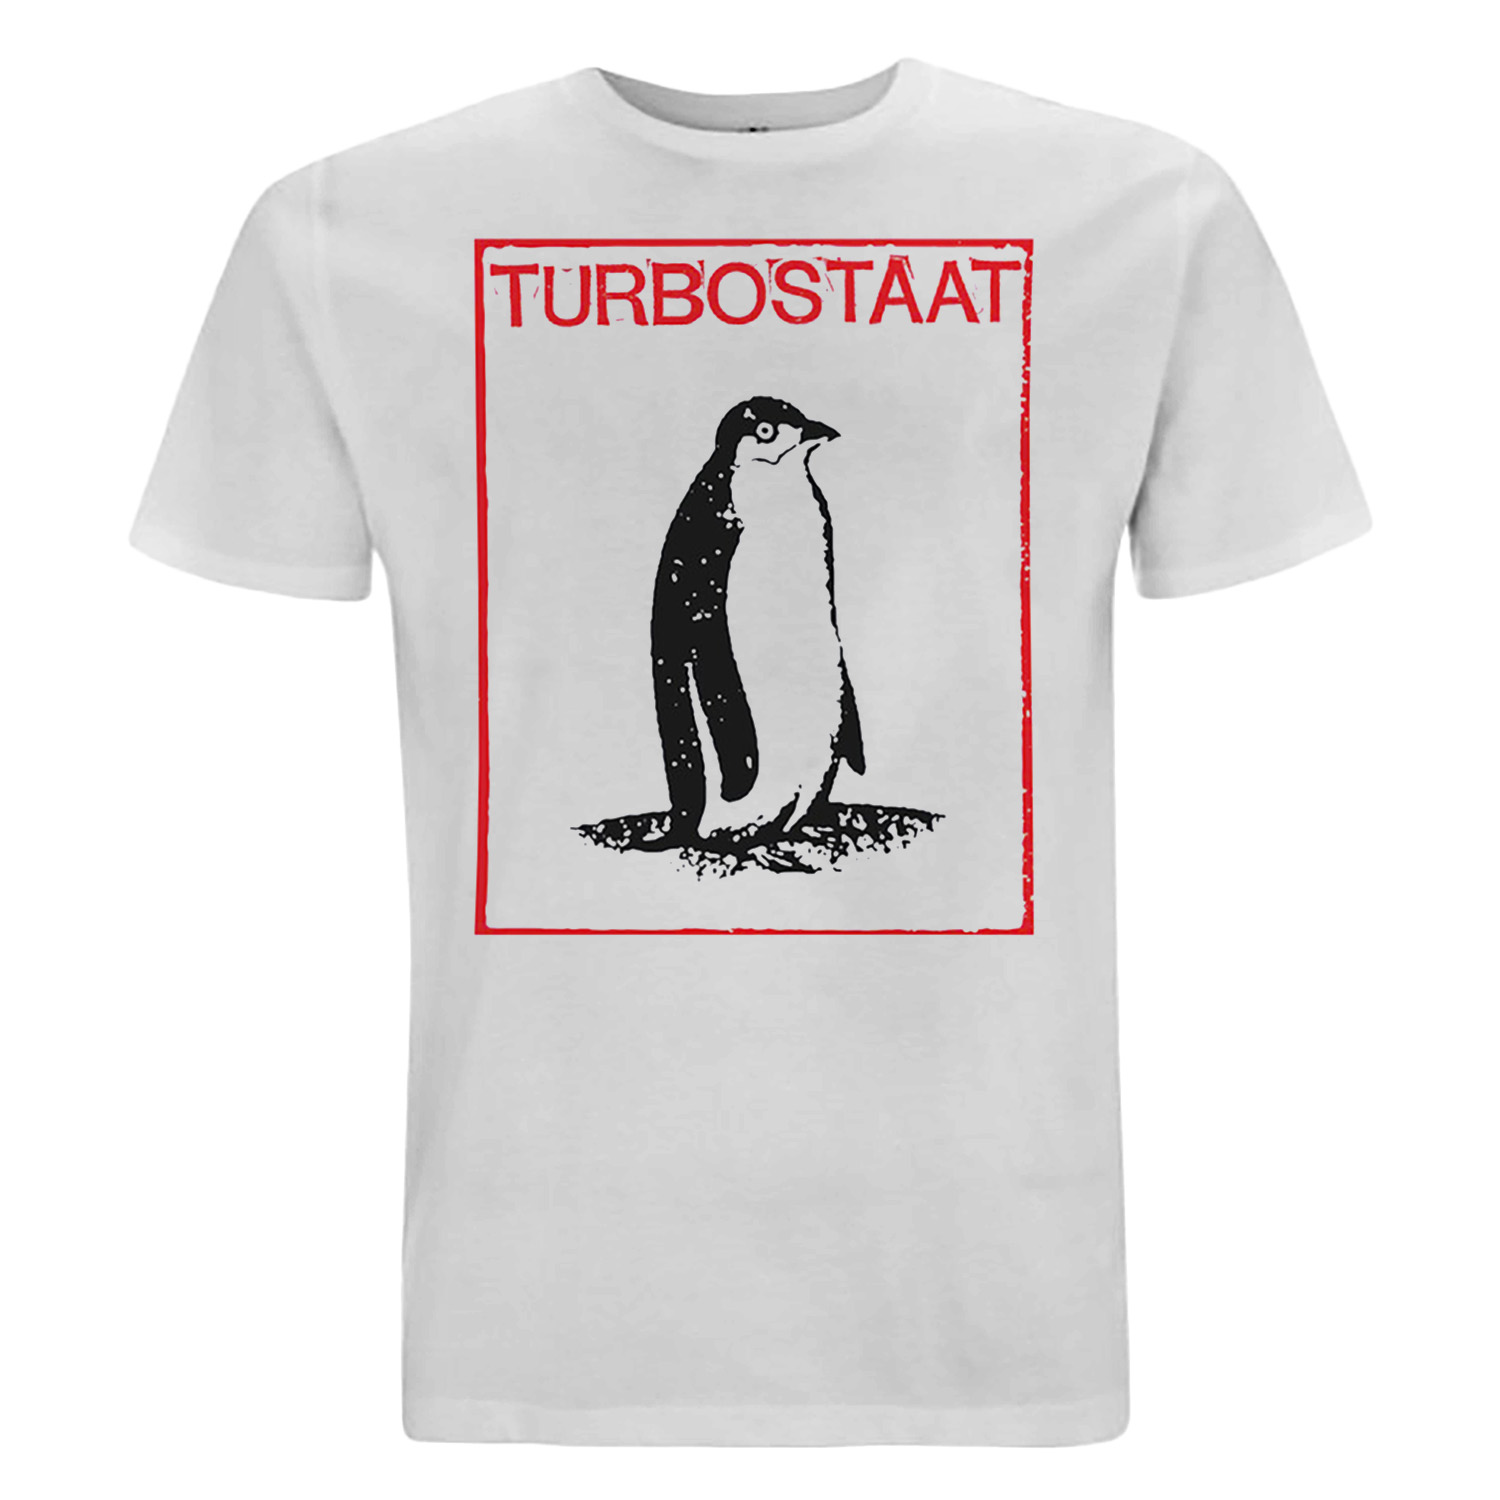 Turbostaat Pinguin T-Shirt, weiß